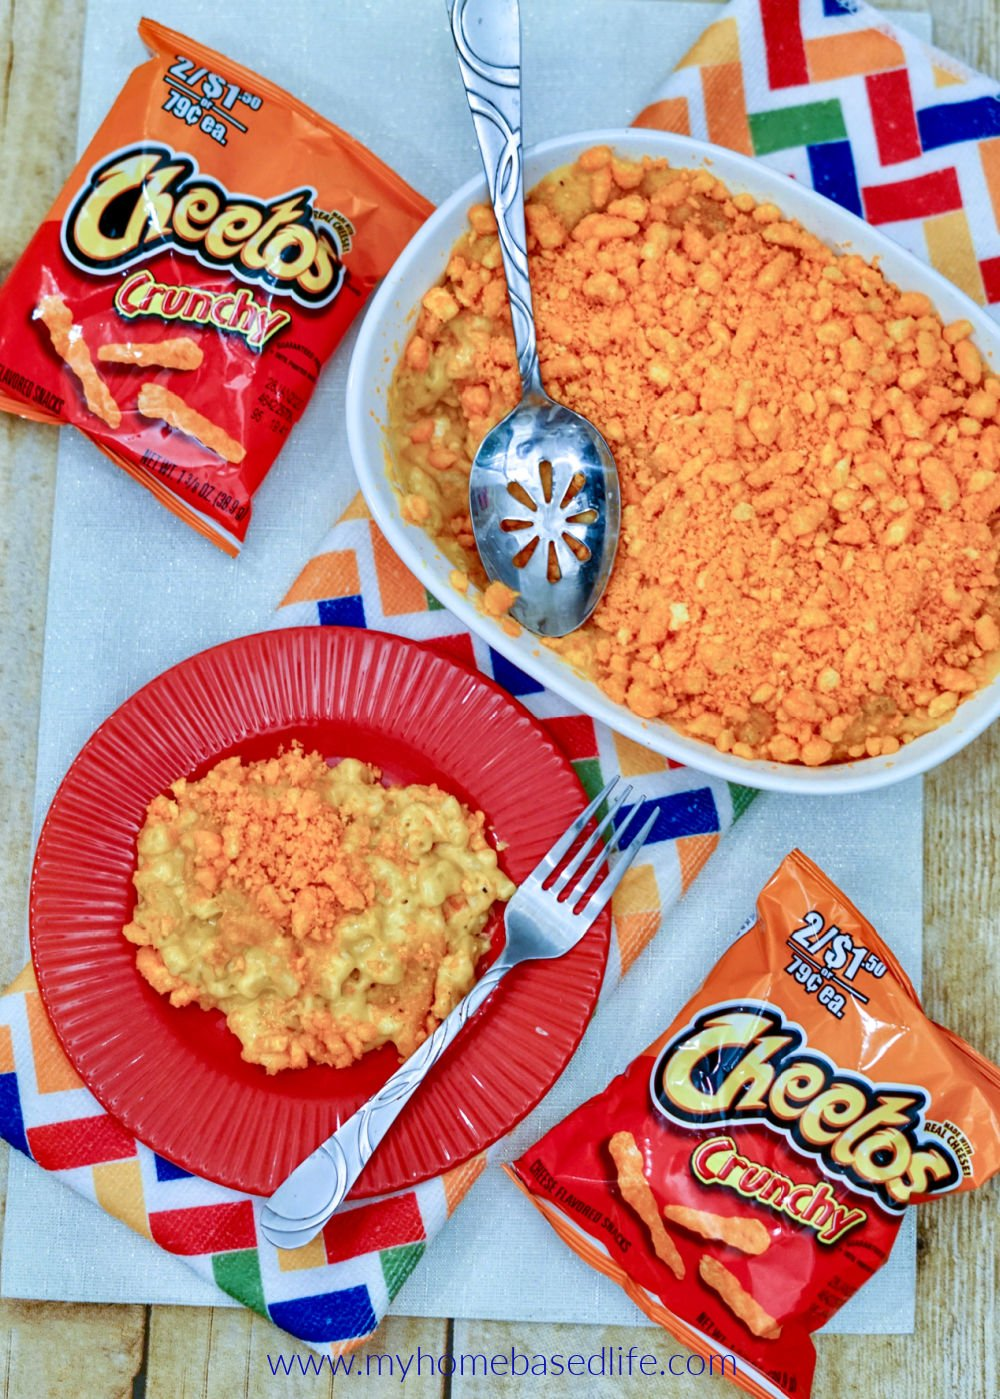 Cheeto macaroni recipe